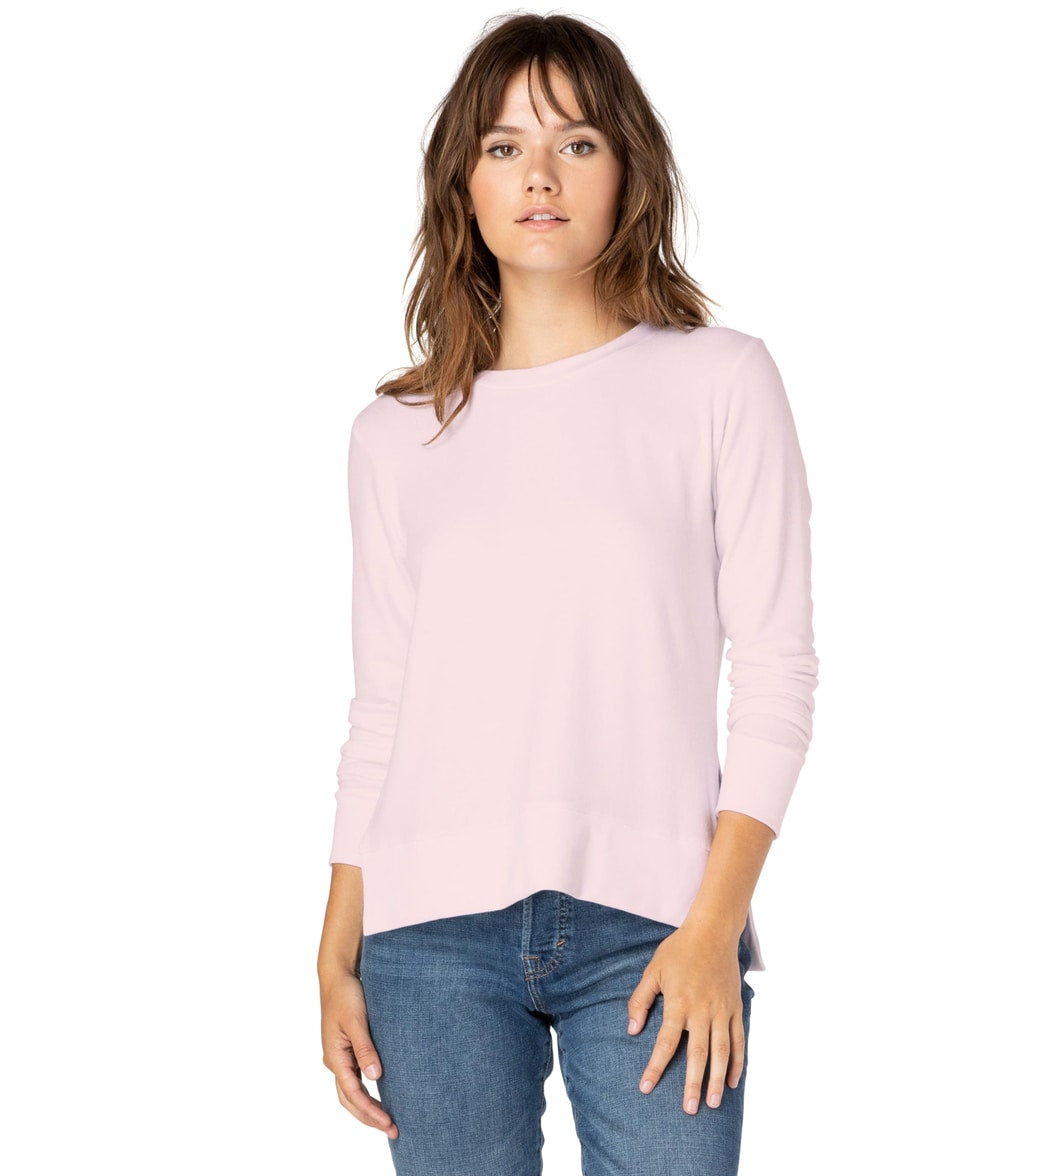 Feel cozy and look effortlessly chic in the Beyond Yoga Just Chillin Long Sleeve Pullover. FeaturesLong sleeve pullover. Solid. High low hem. Side slits. Relaxed fit. Low hip length. Ultra soft. Locally sourced. DetailsFabric: 47% Polyester, 47% Rayon, 6% Spandex. Color: White or Pink Blush. Style Features: High low hem, side slits. Fit: Relaxed. Adjustable: No. Length: Low hip length. Care: Machine washable. Country of Origin: Made in the U.S.A. About Beyond Yoga: Beyond Yoga is a luxury lifest